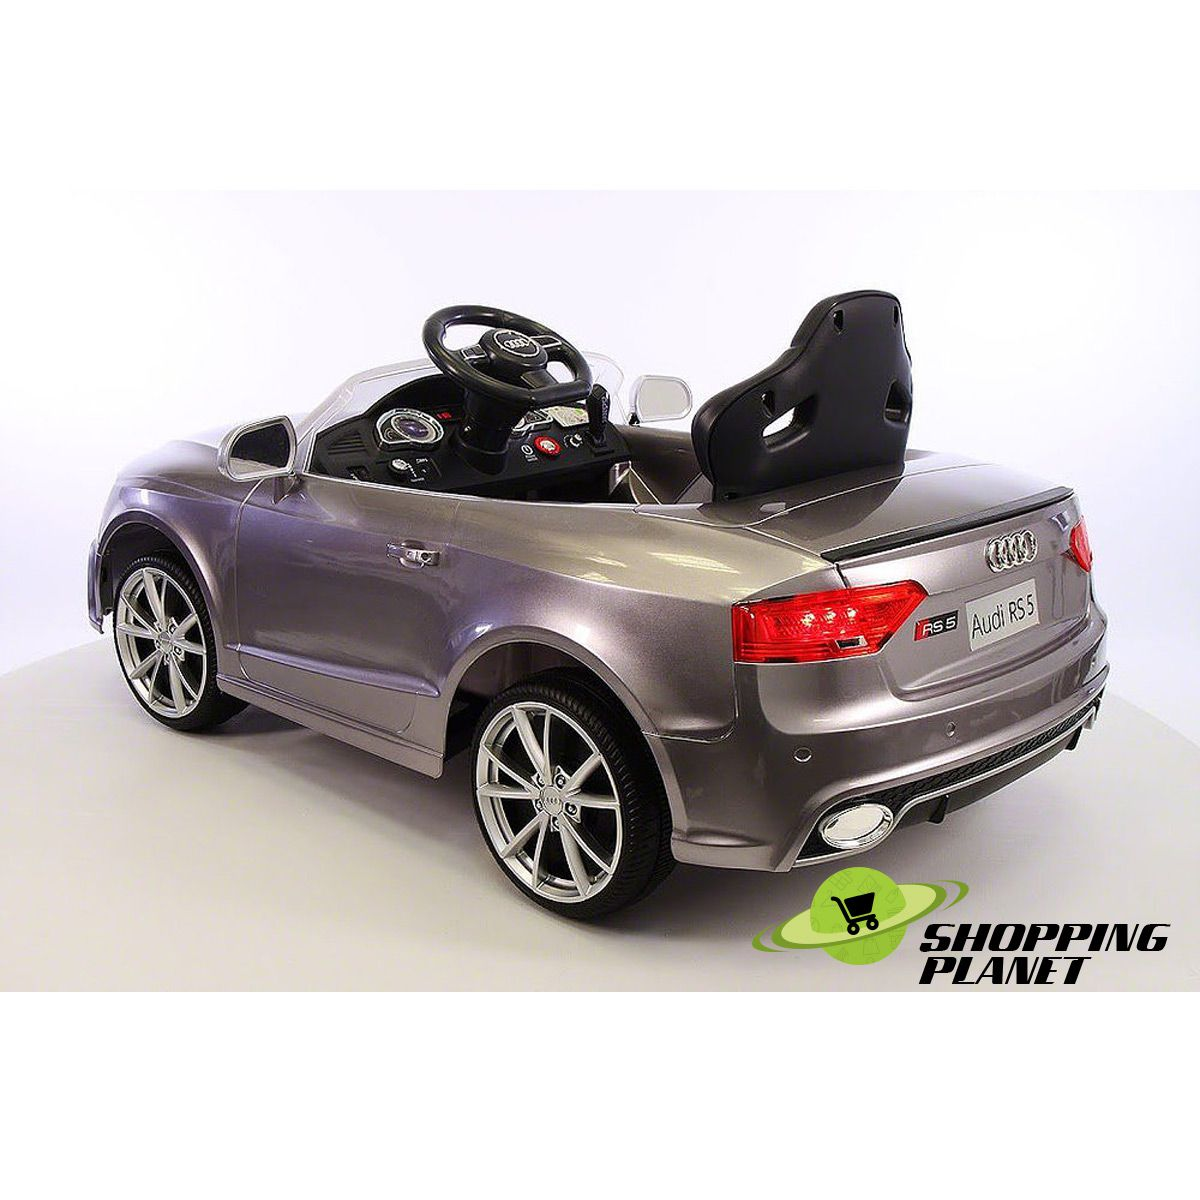 Audi Rs5 12v Chargeable Battery Car For Kids Gt Shopping Planet Pk